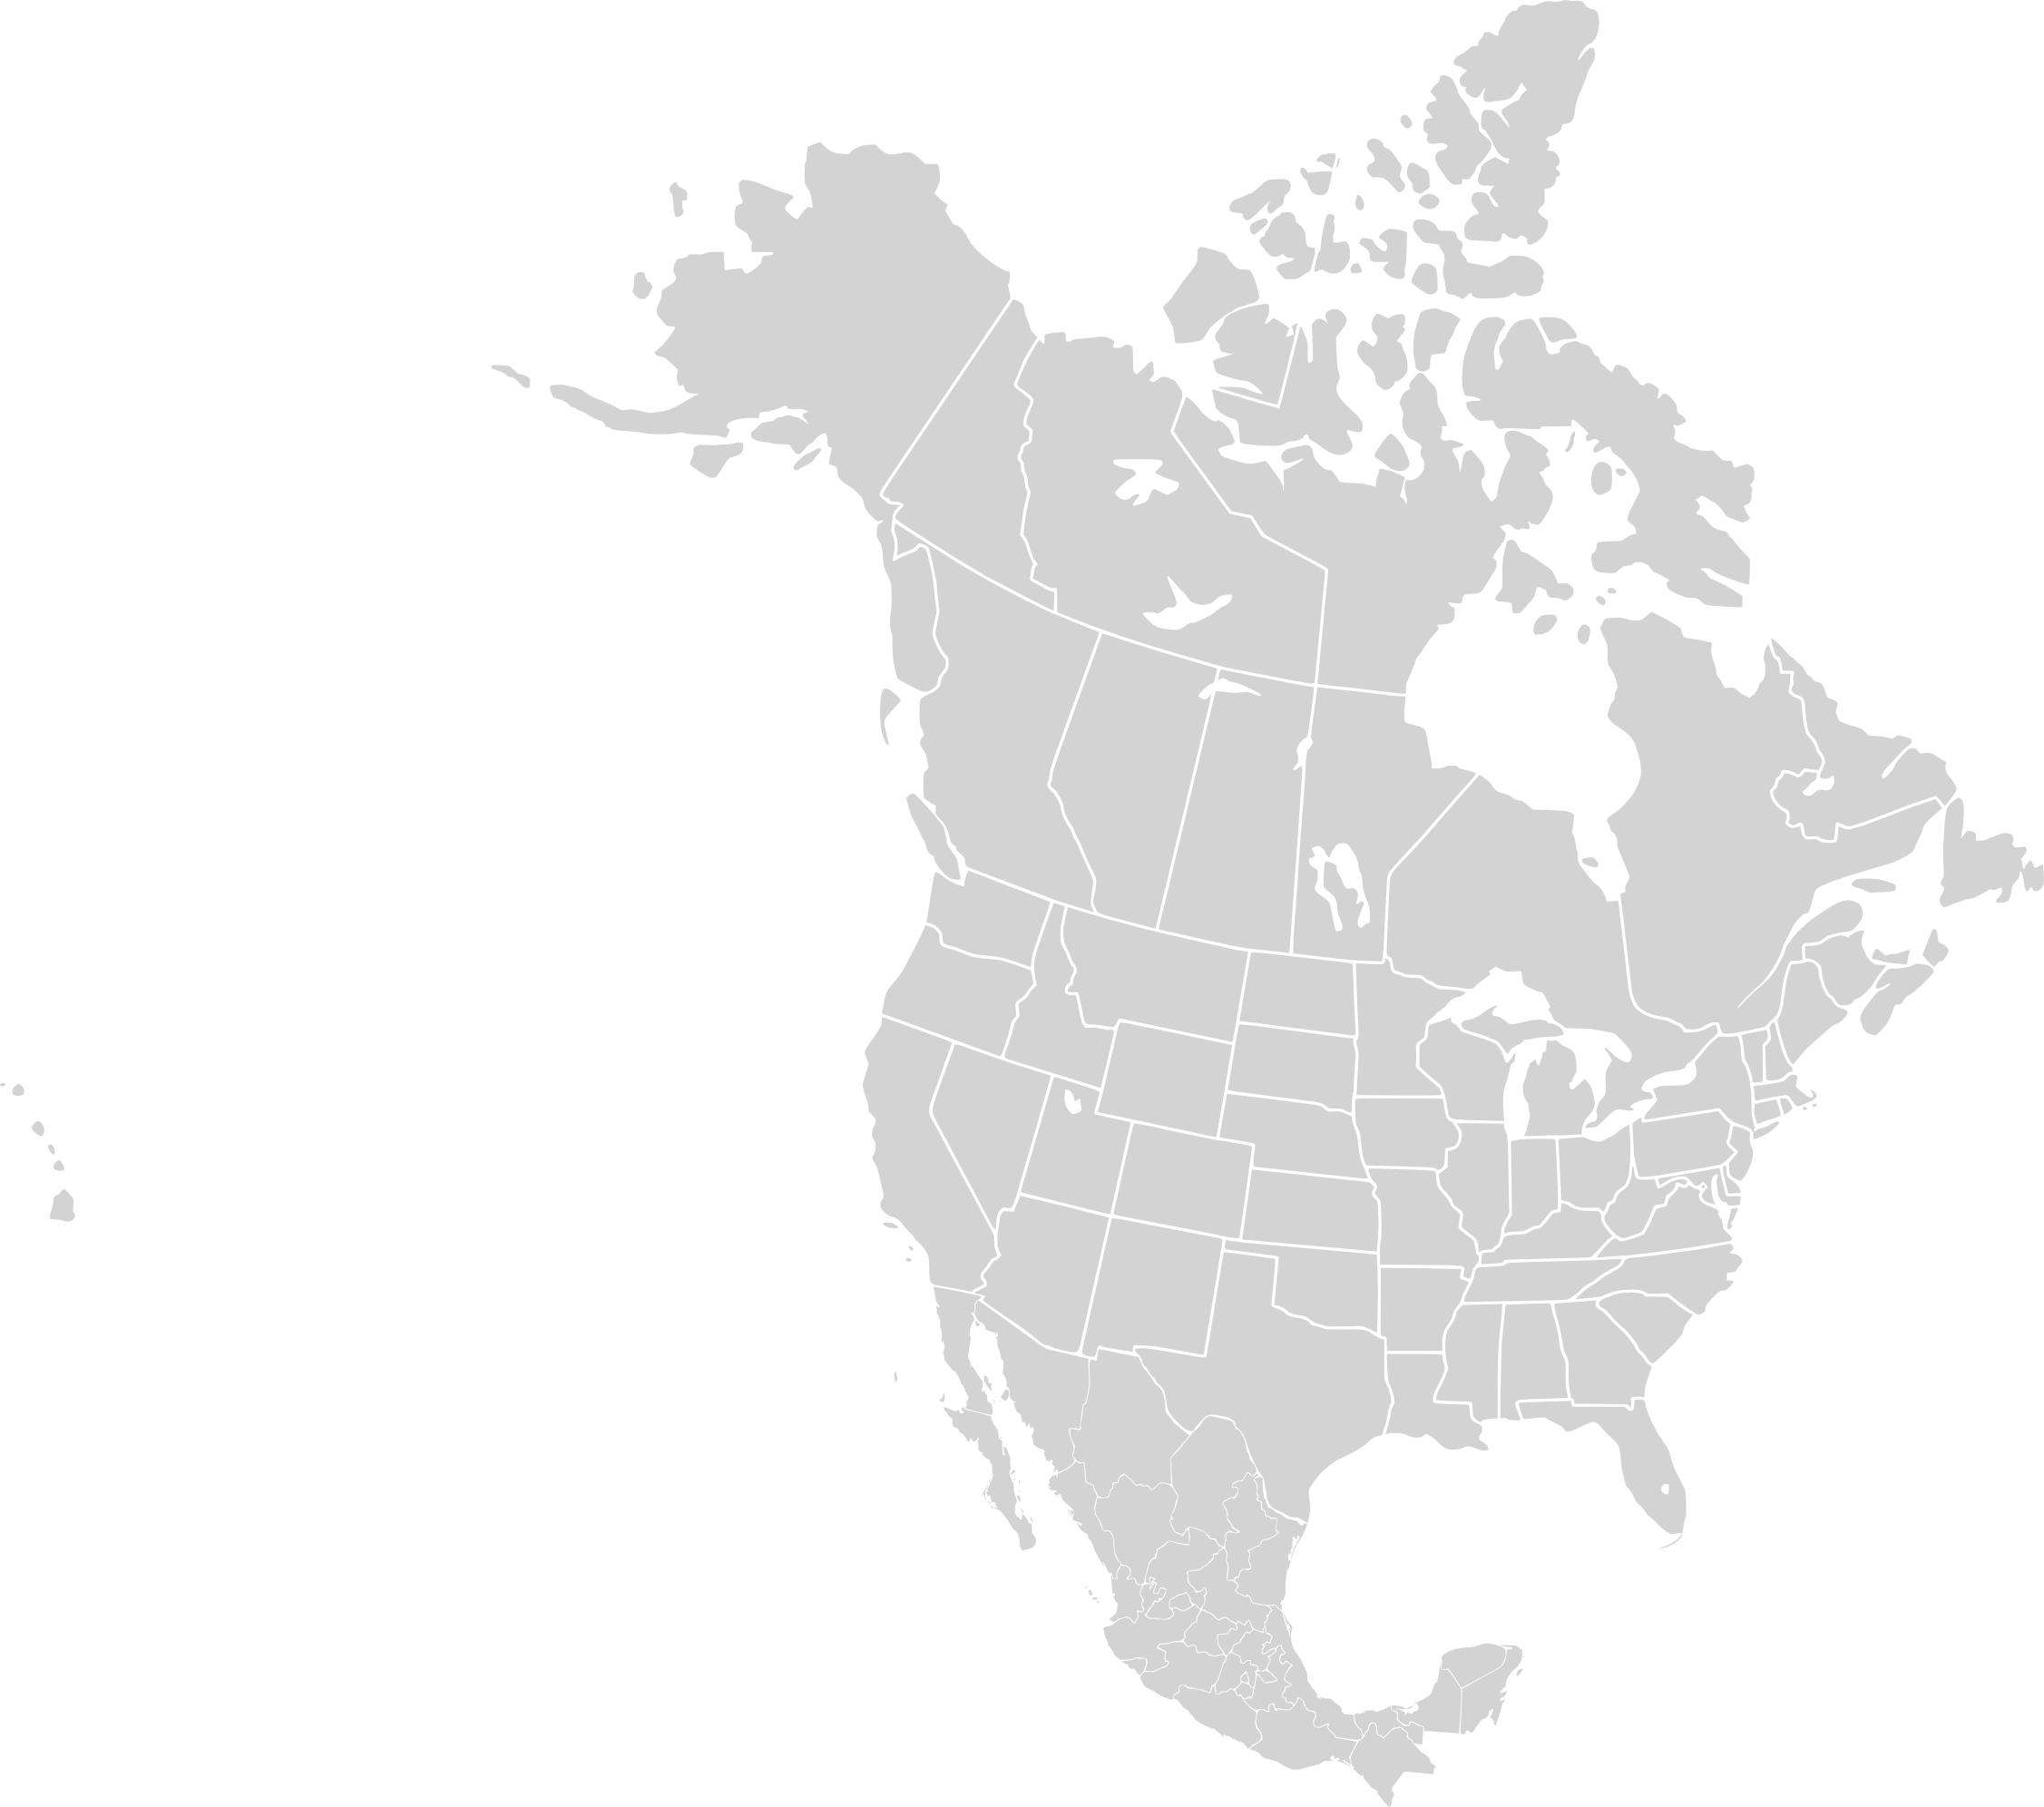 North America Blank Range Map Mapsof Net